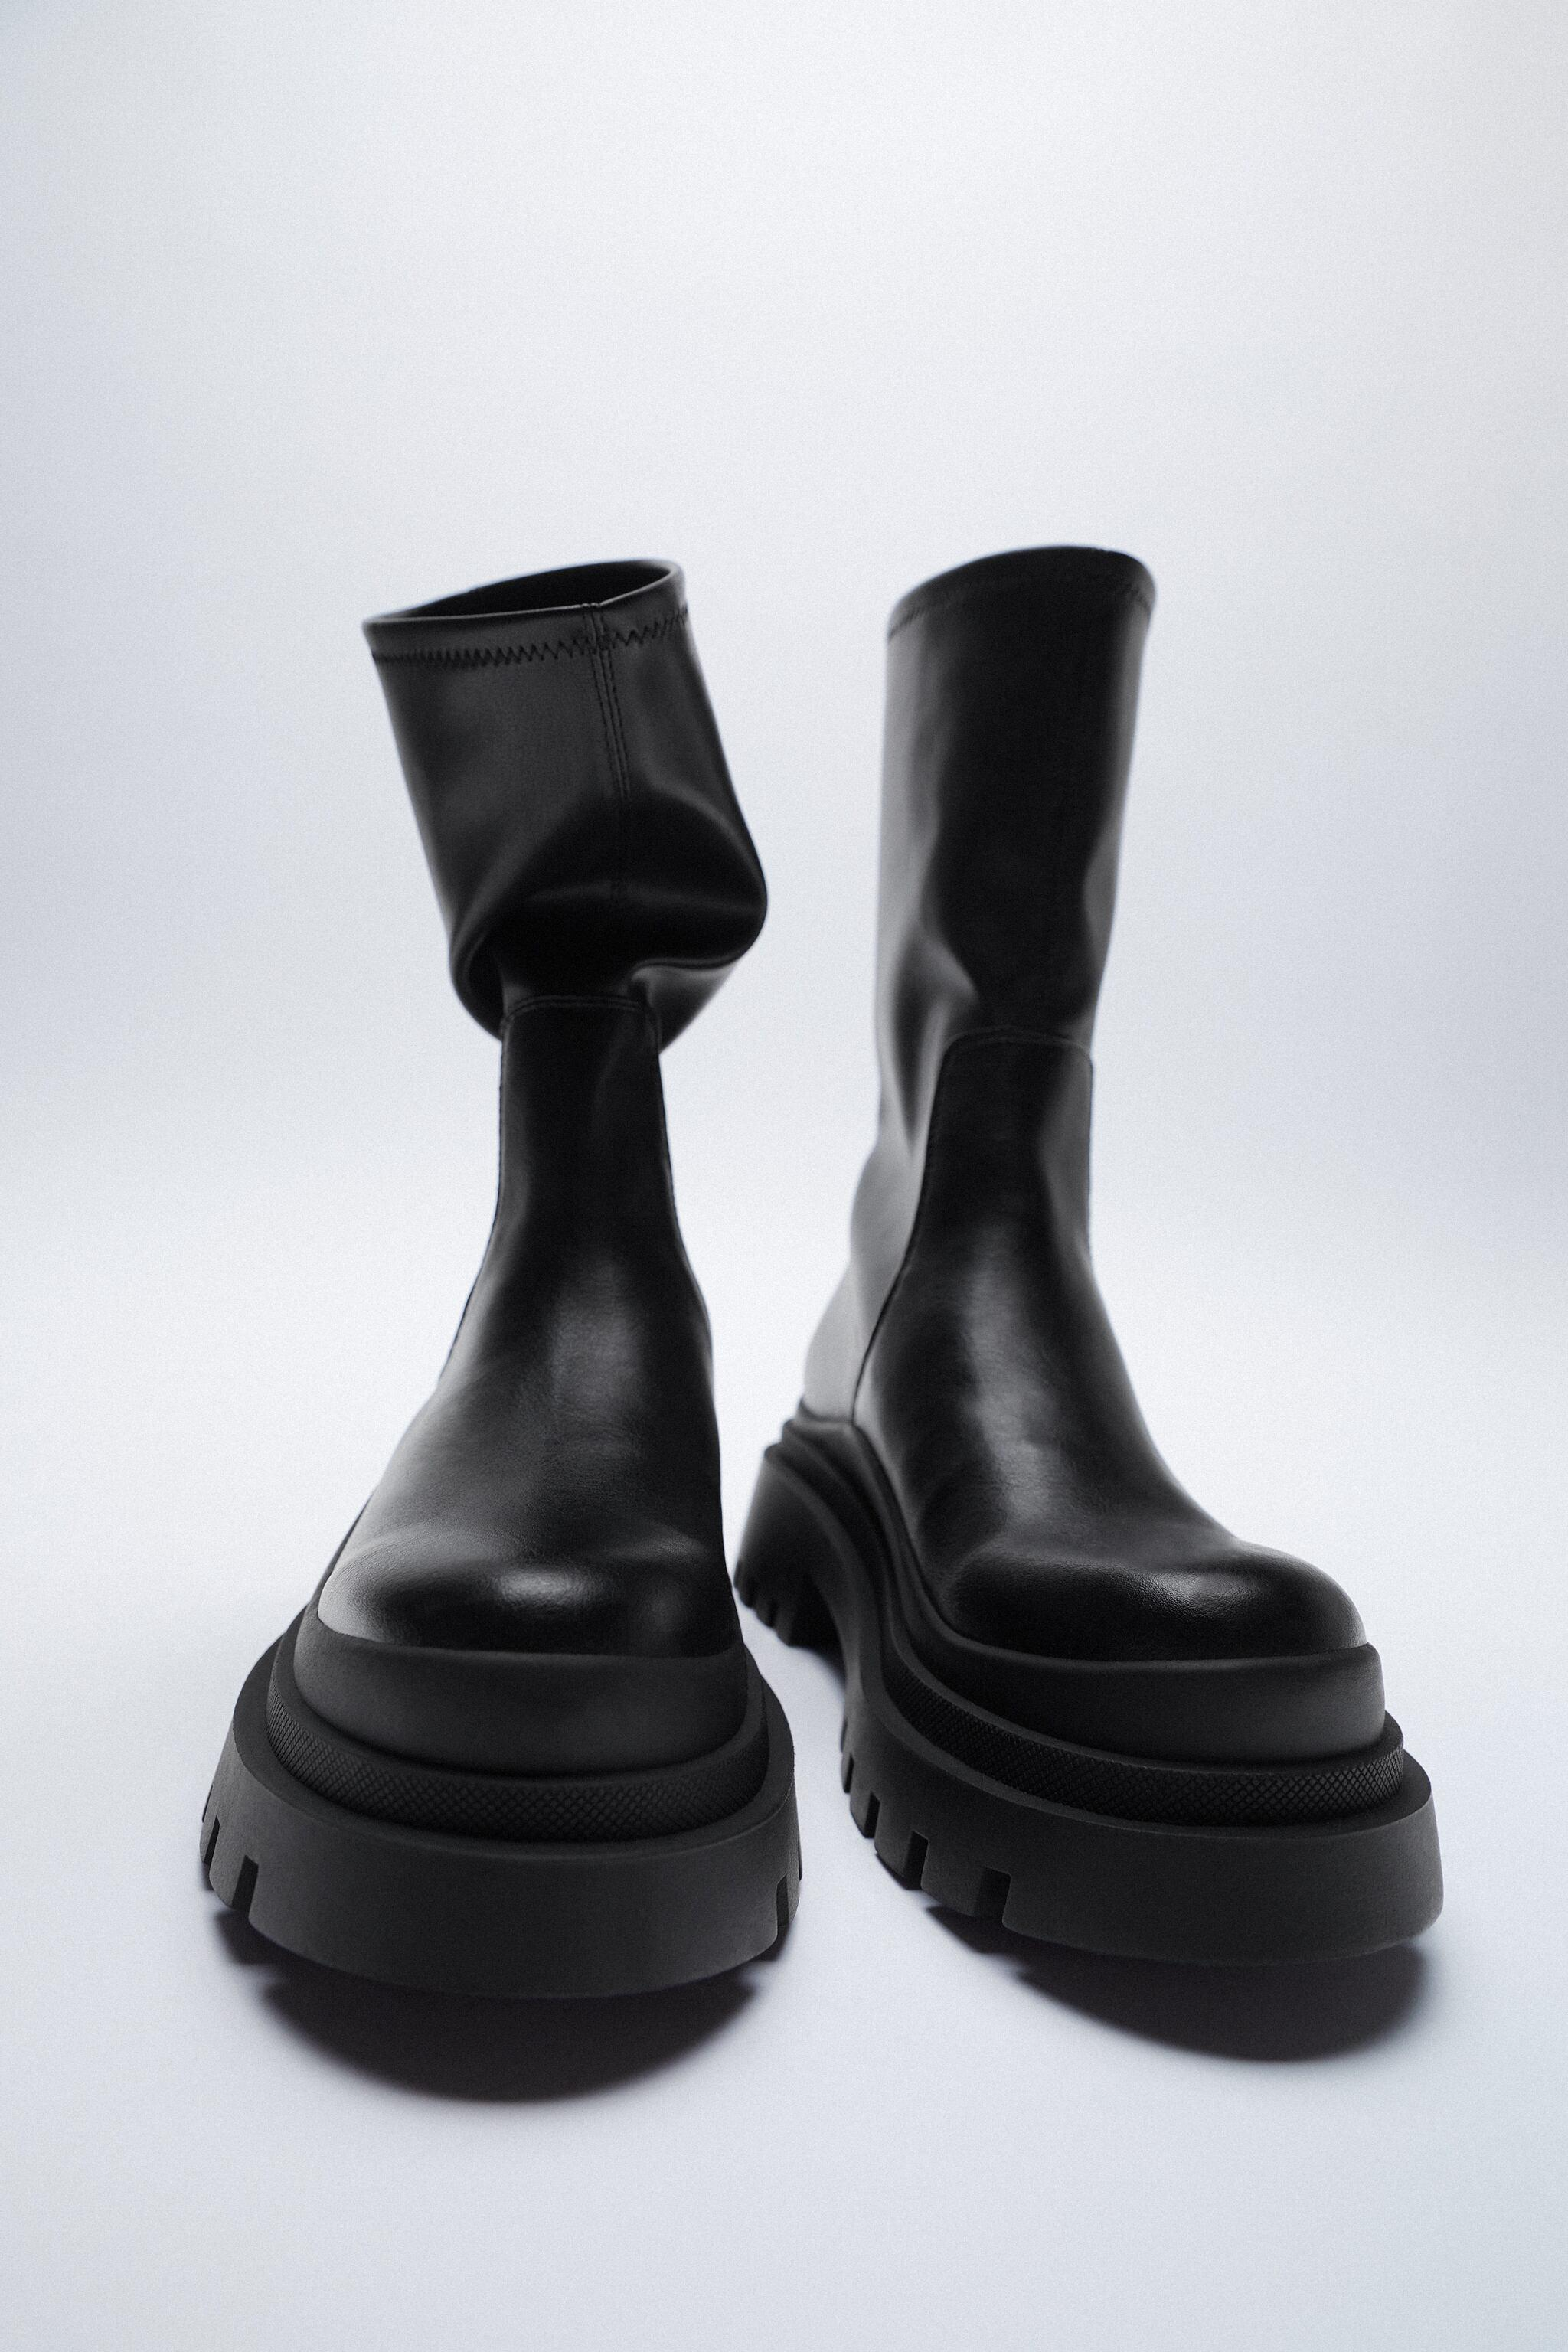 LOW HEELED LUG SOLE ANKLE BOOTS 1